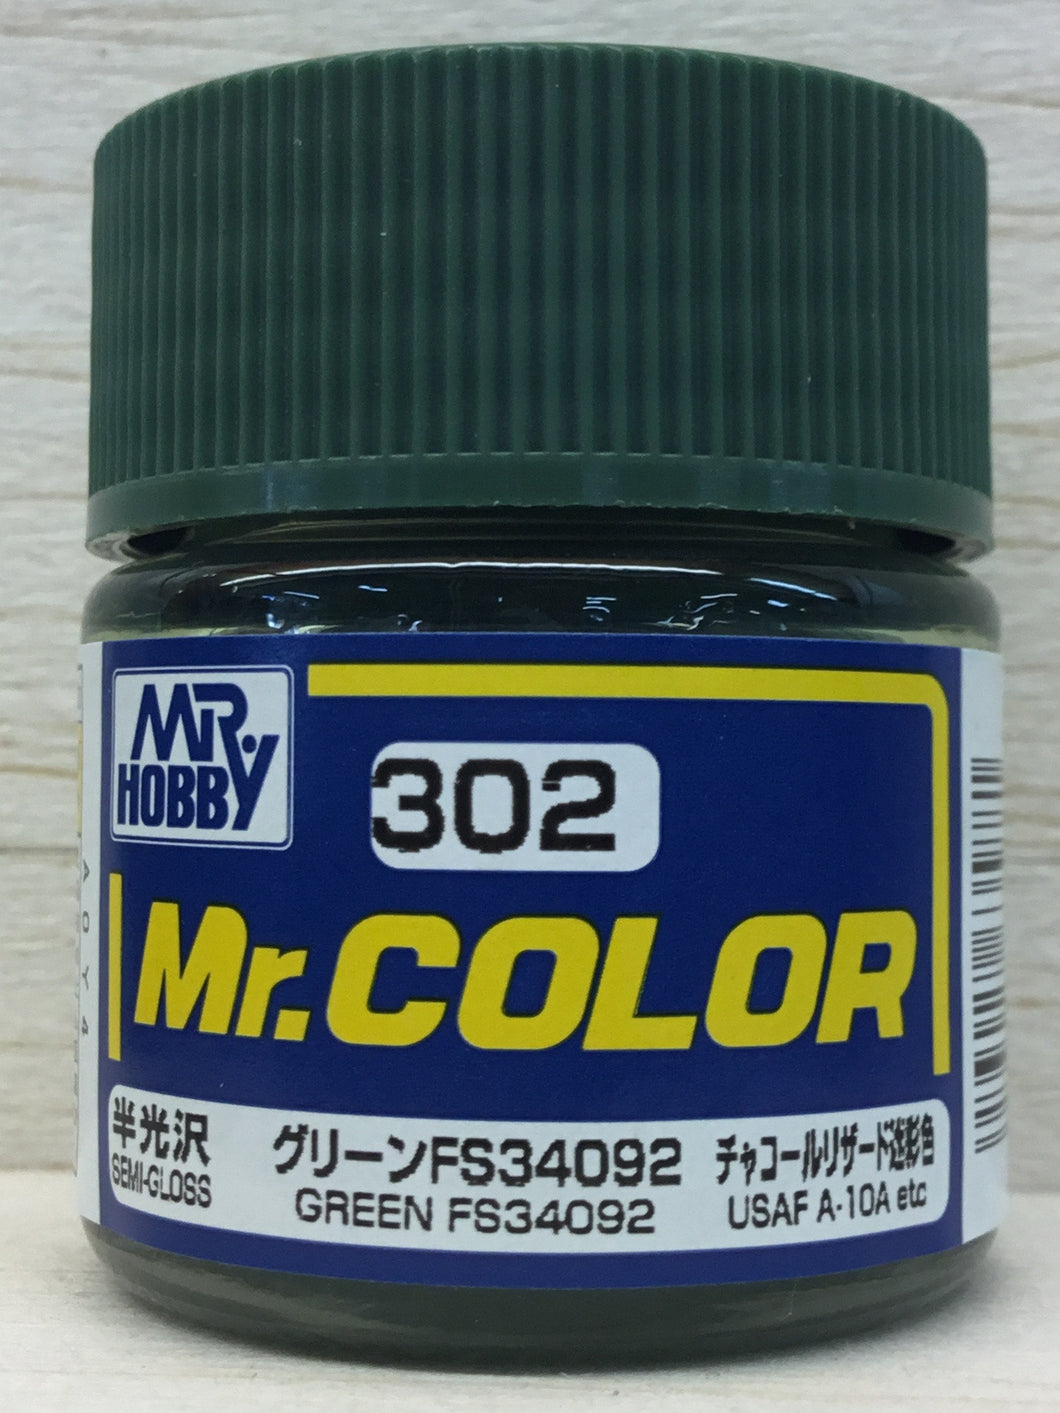 GUNZE MR COLOR C302 SEMI GLOSS GREEN FS34092